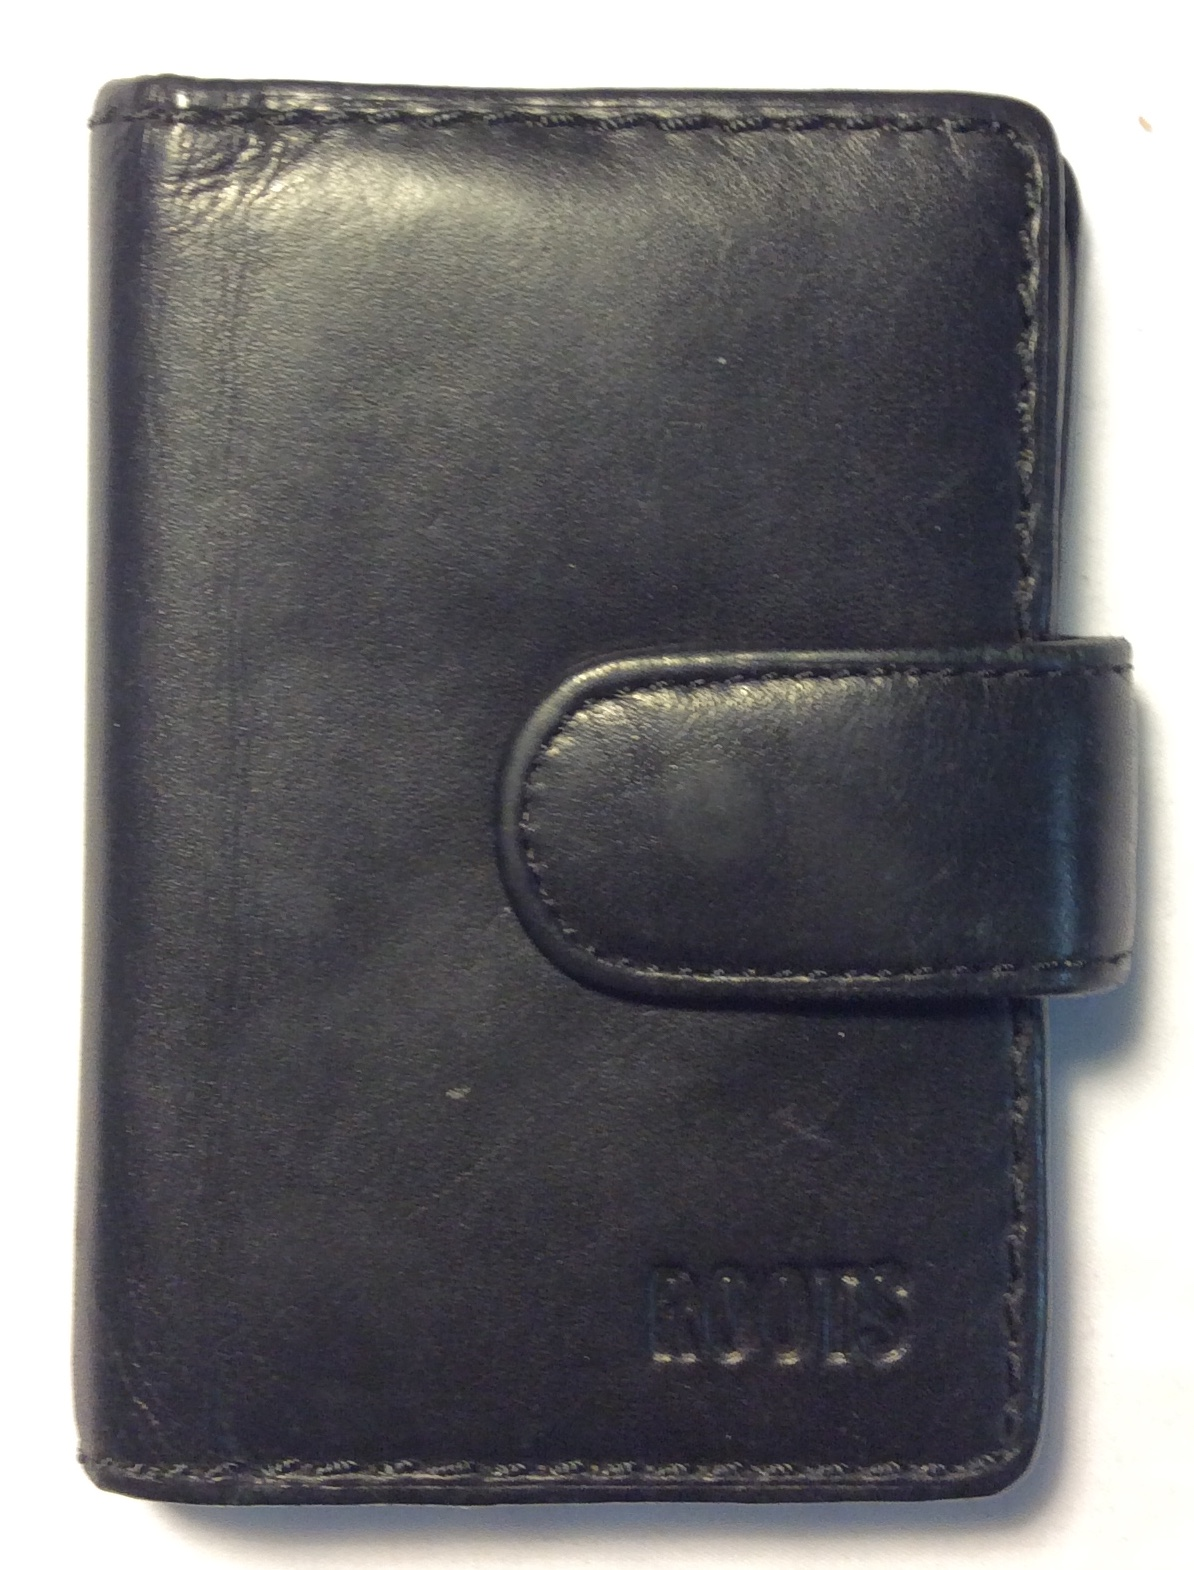 Roots Black leather card holder